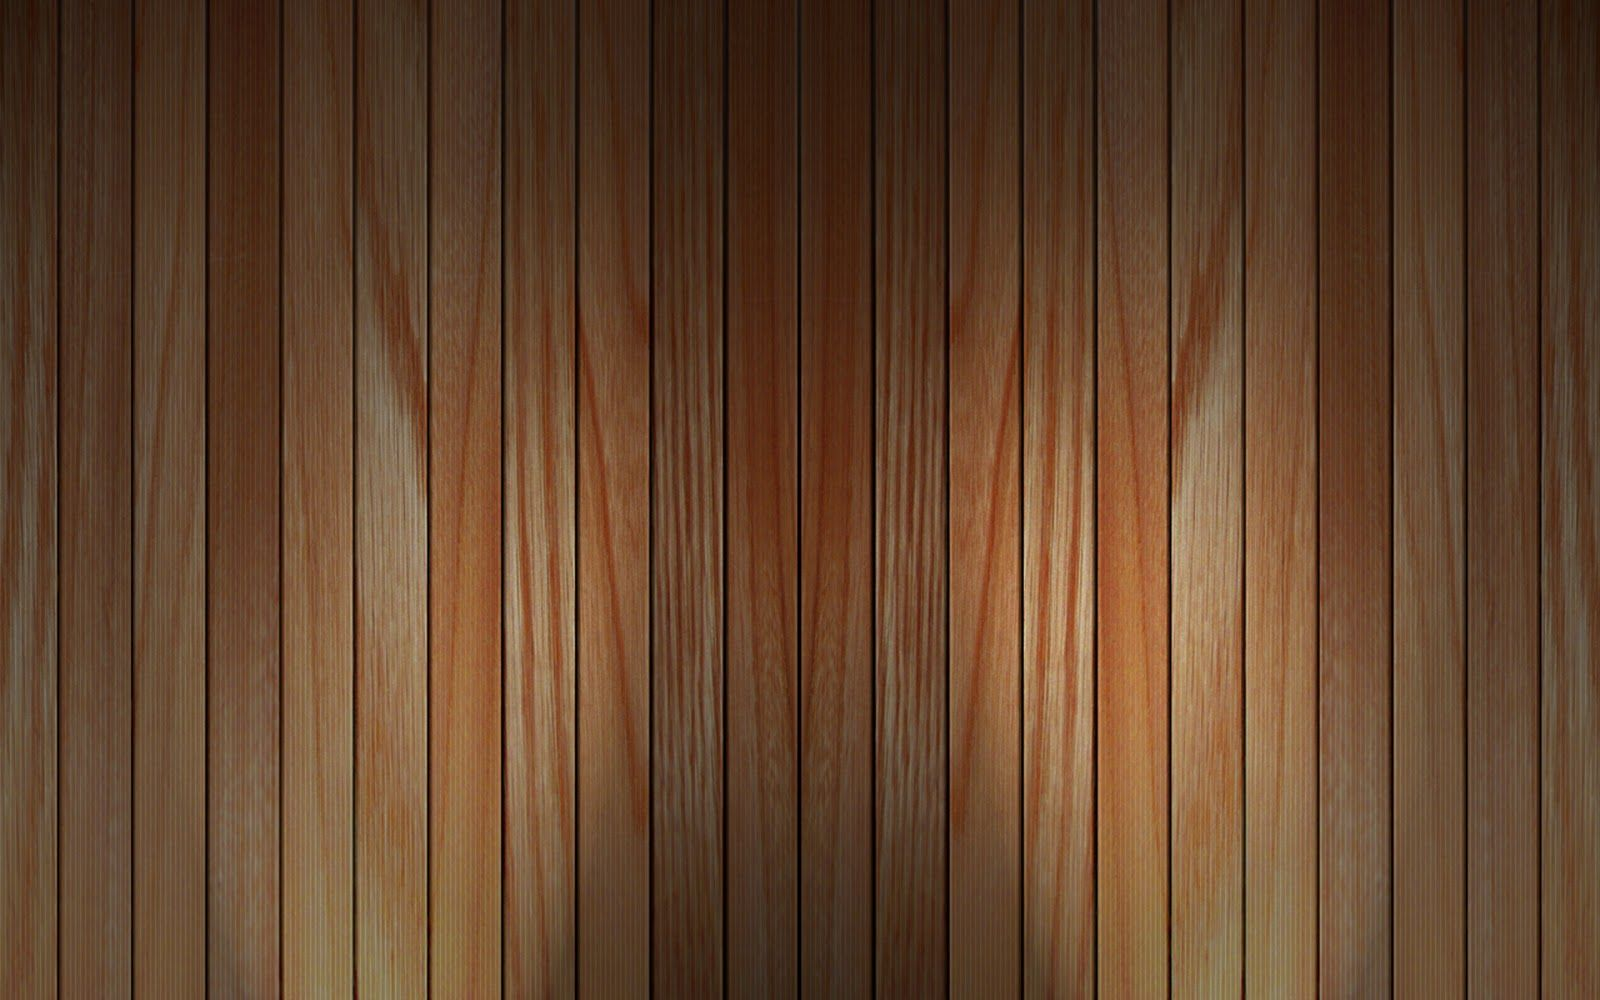 Wood Wallpapers Wallpaper Hd 1080p Wood Wallpaper Wood Grain Wallpaper Plain Wallpaper